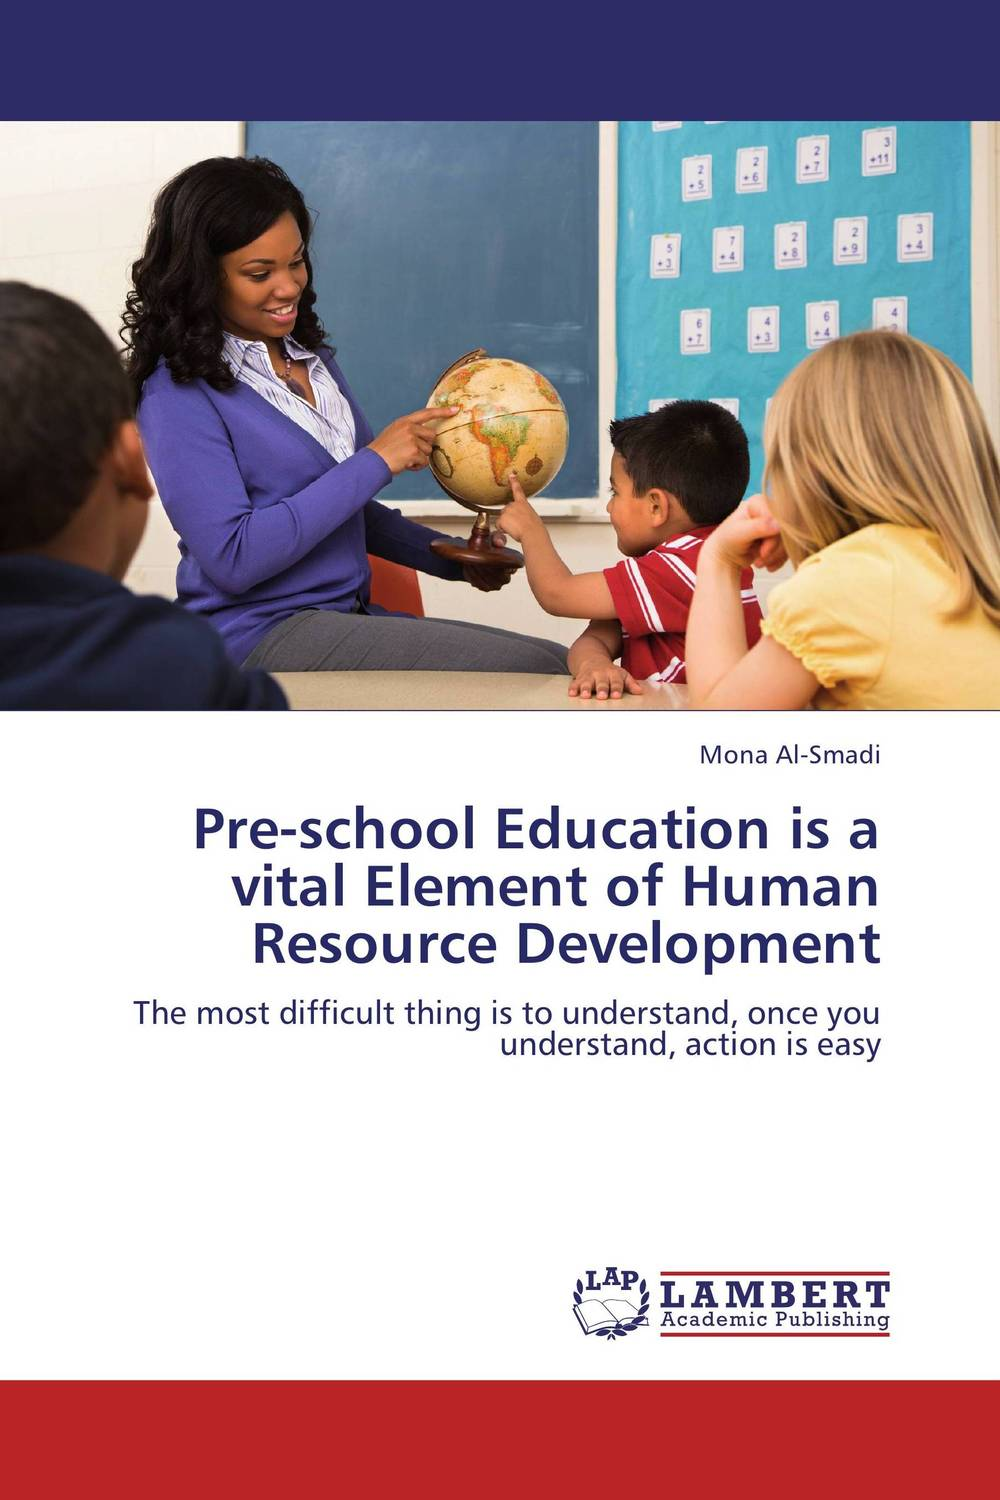 Pre-school Education is a vital Element of Human Resource Development early childhood development education